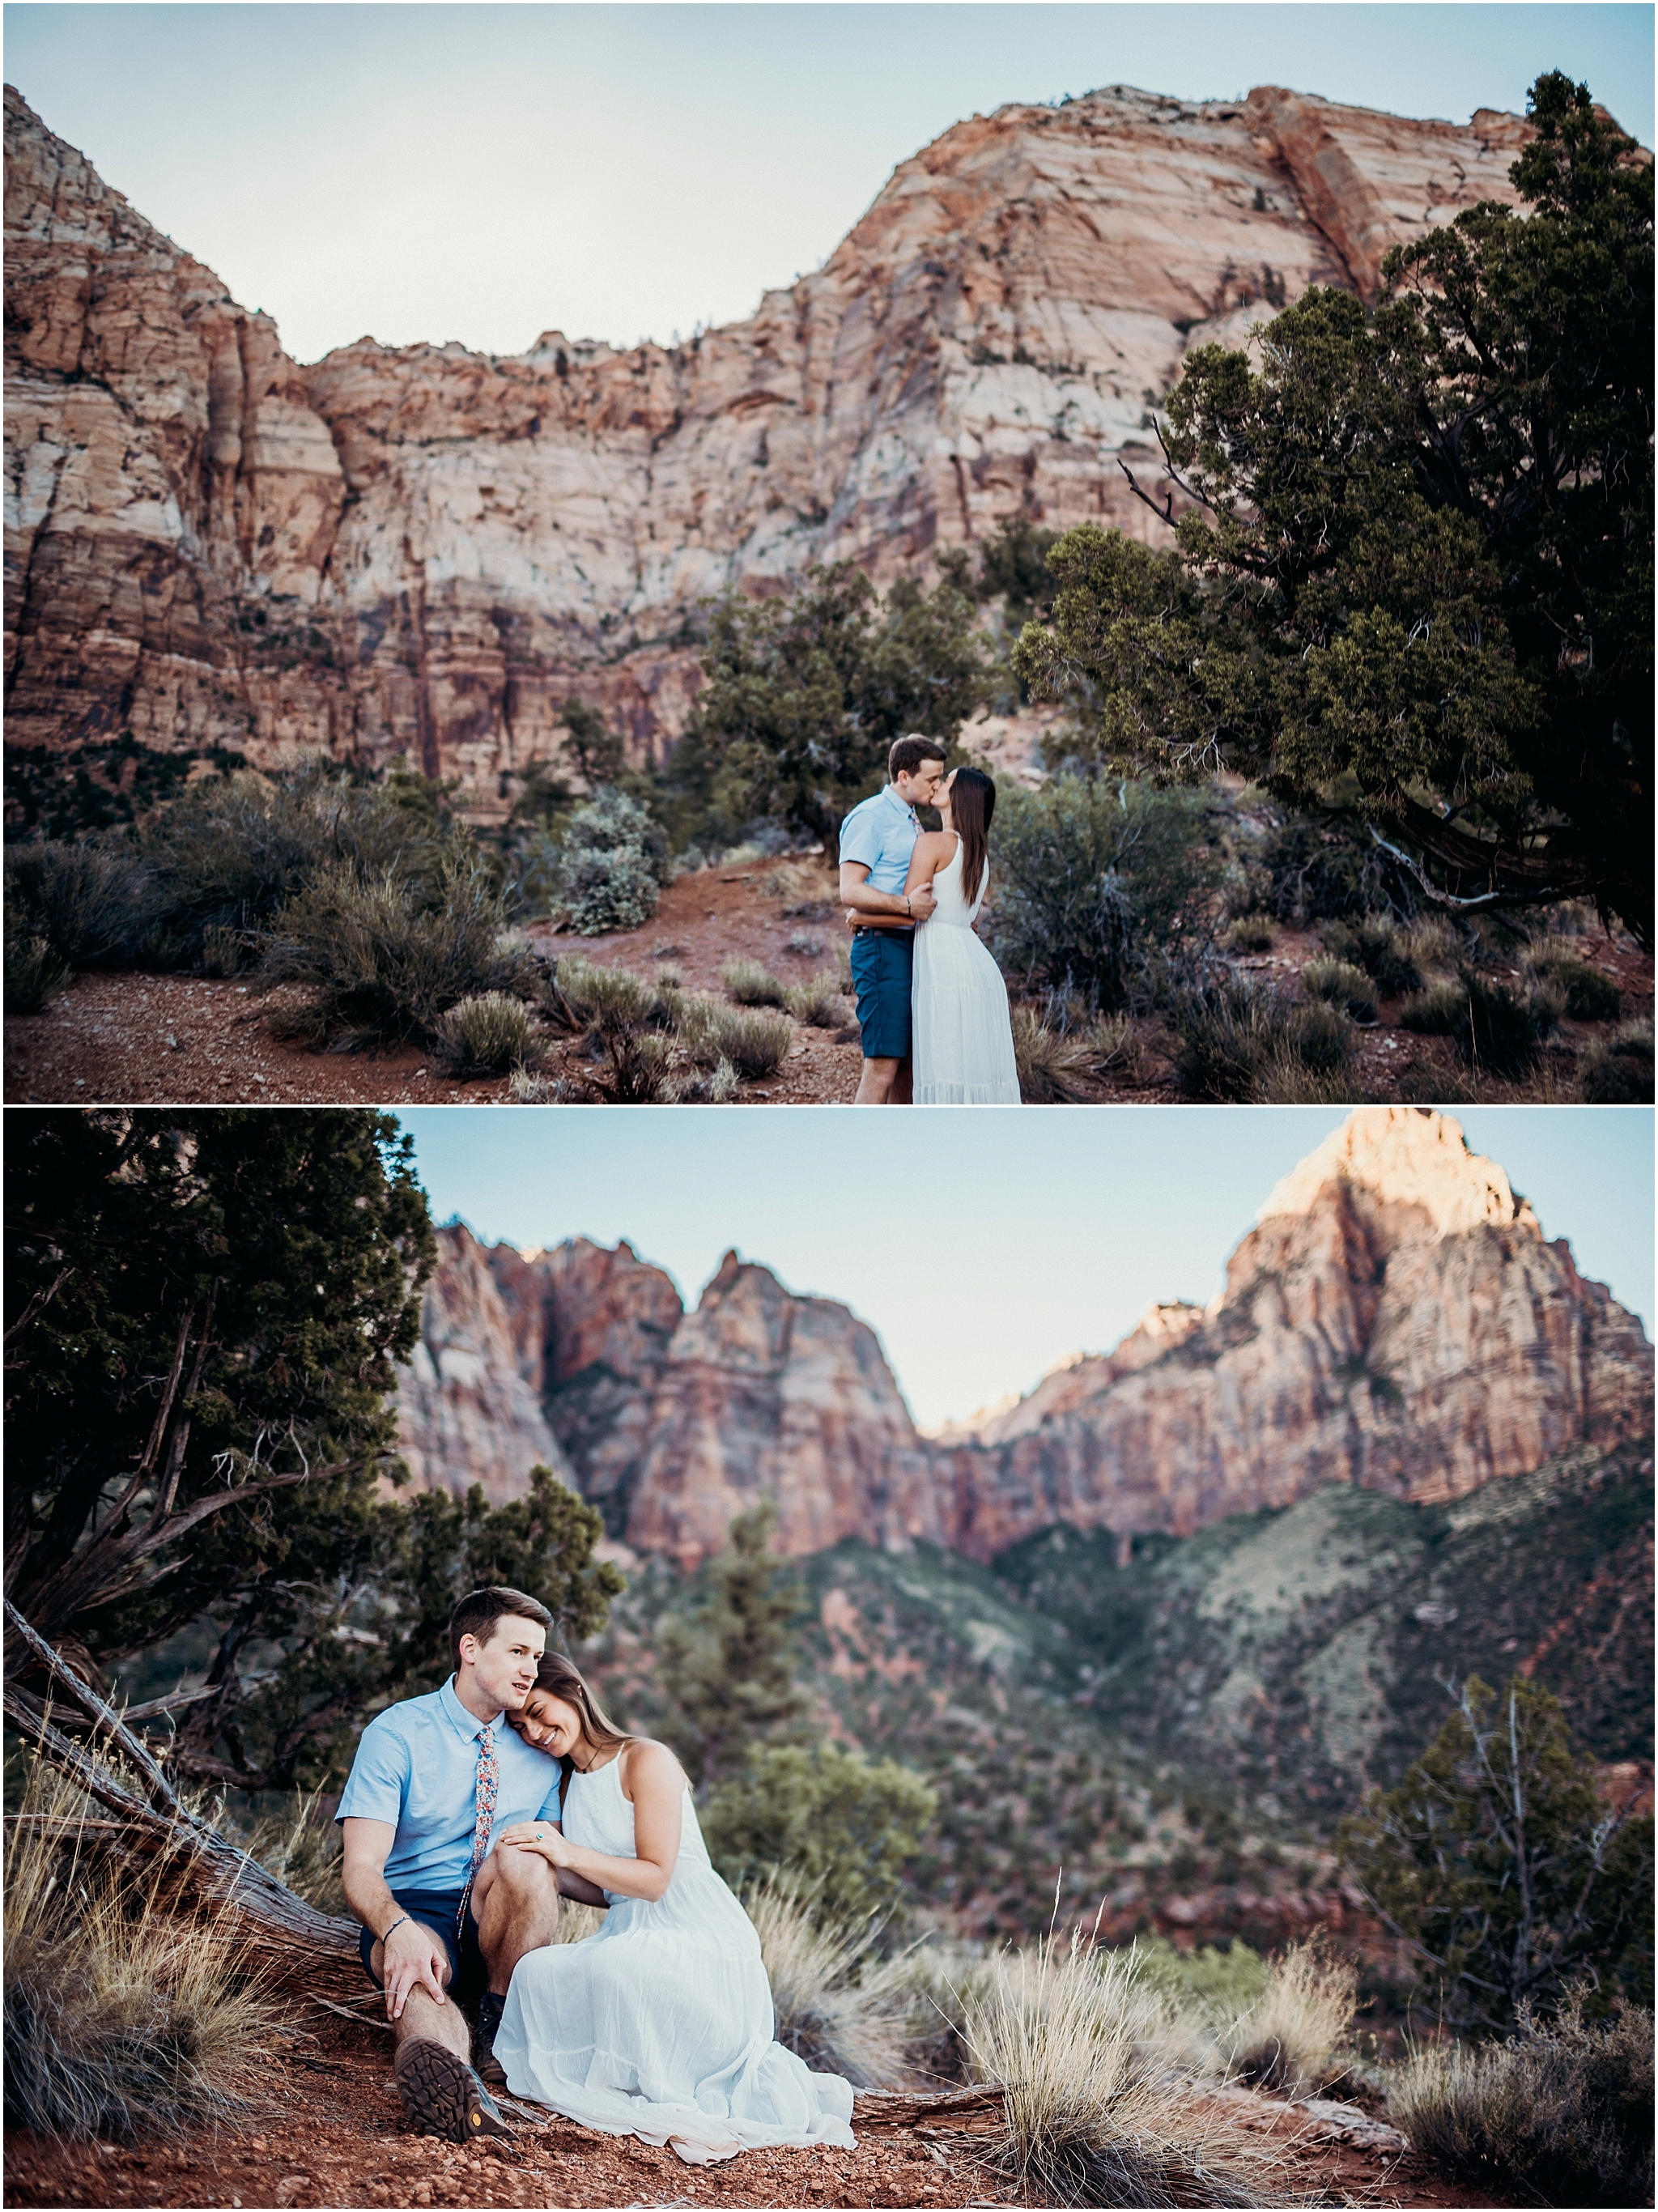 zion national park adventure engagement session zion portraits utah photographer arizona photographer 13.jpg